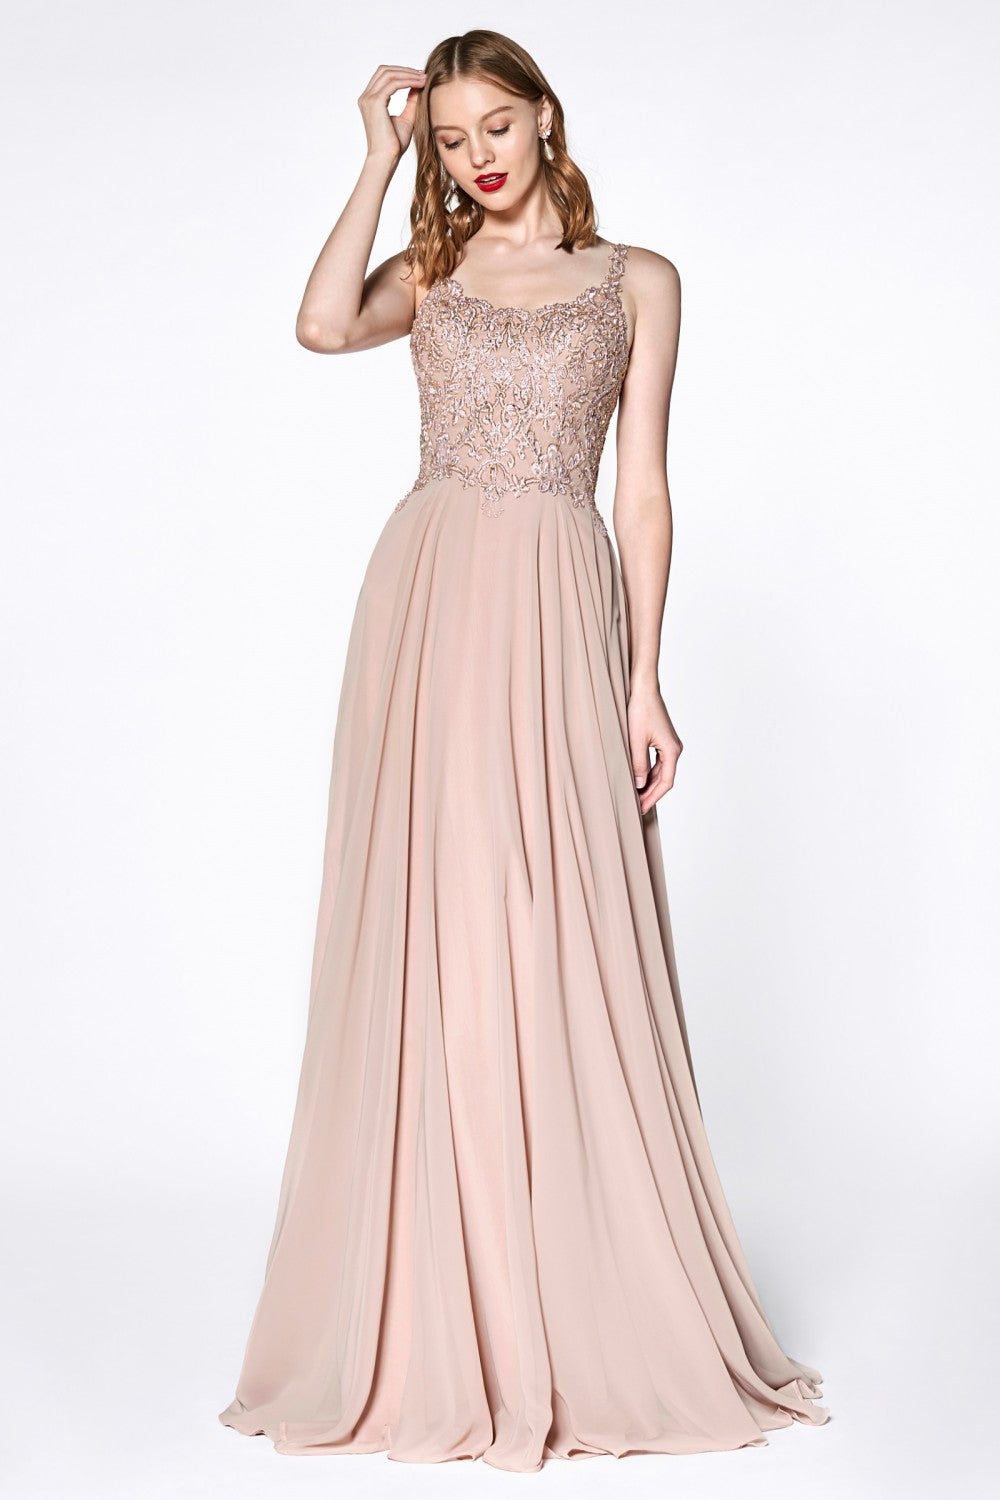 A-Line Chiffon Gown With Lace Bodice And Scoop Back